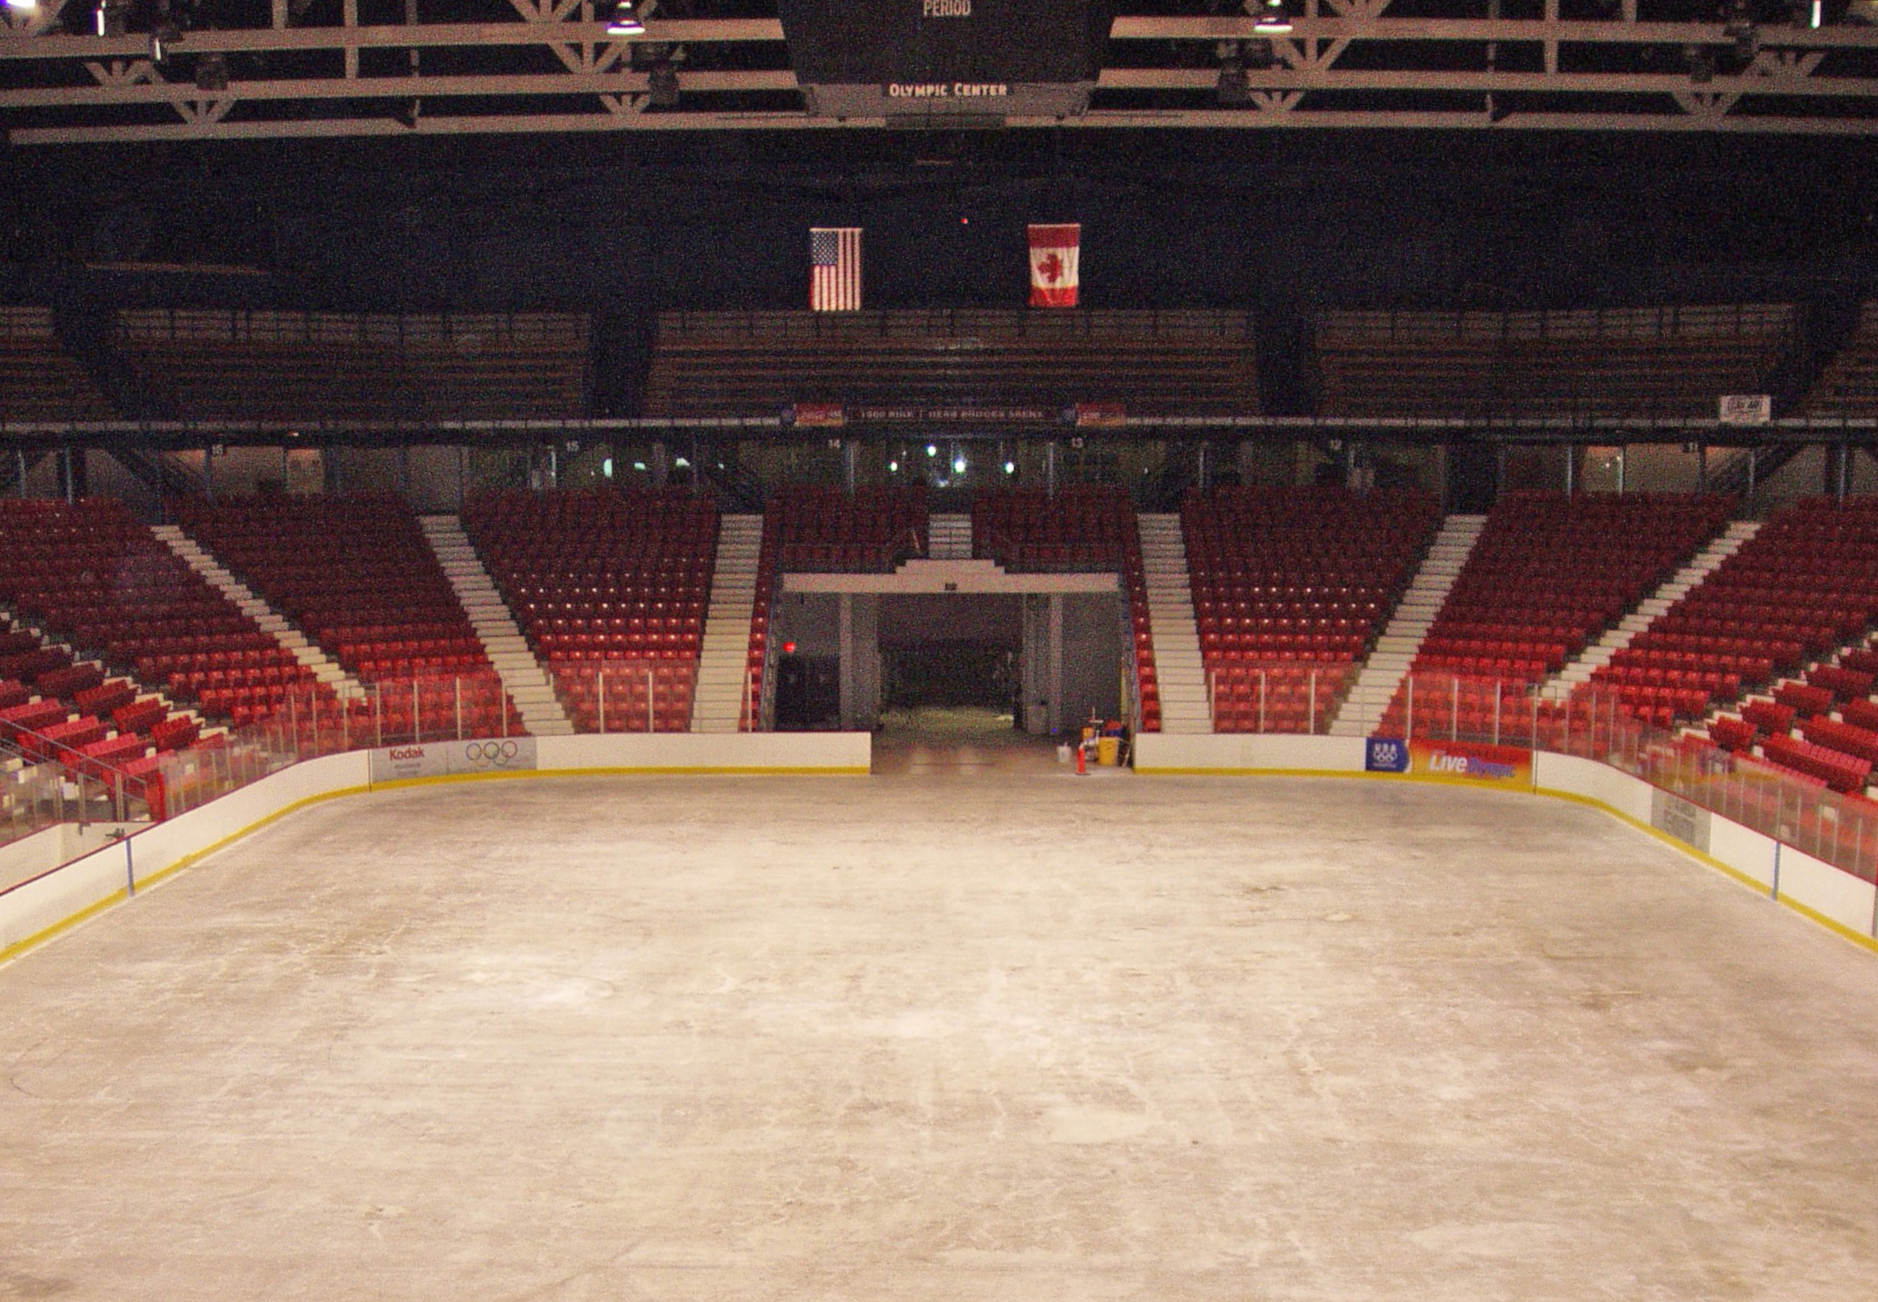 In 2005, to commemorate the 25th anniversary of the American victory, the Lake Placid Fieldhouse was named after the late Herb Brooks, who coached the United States team during the 1980 Olympics.